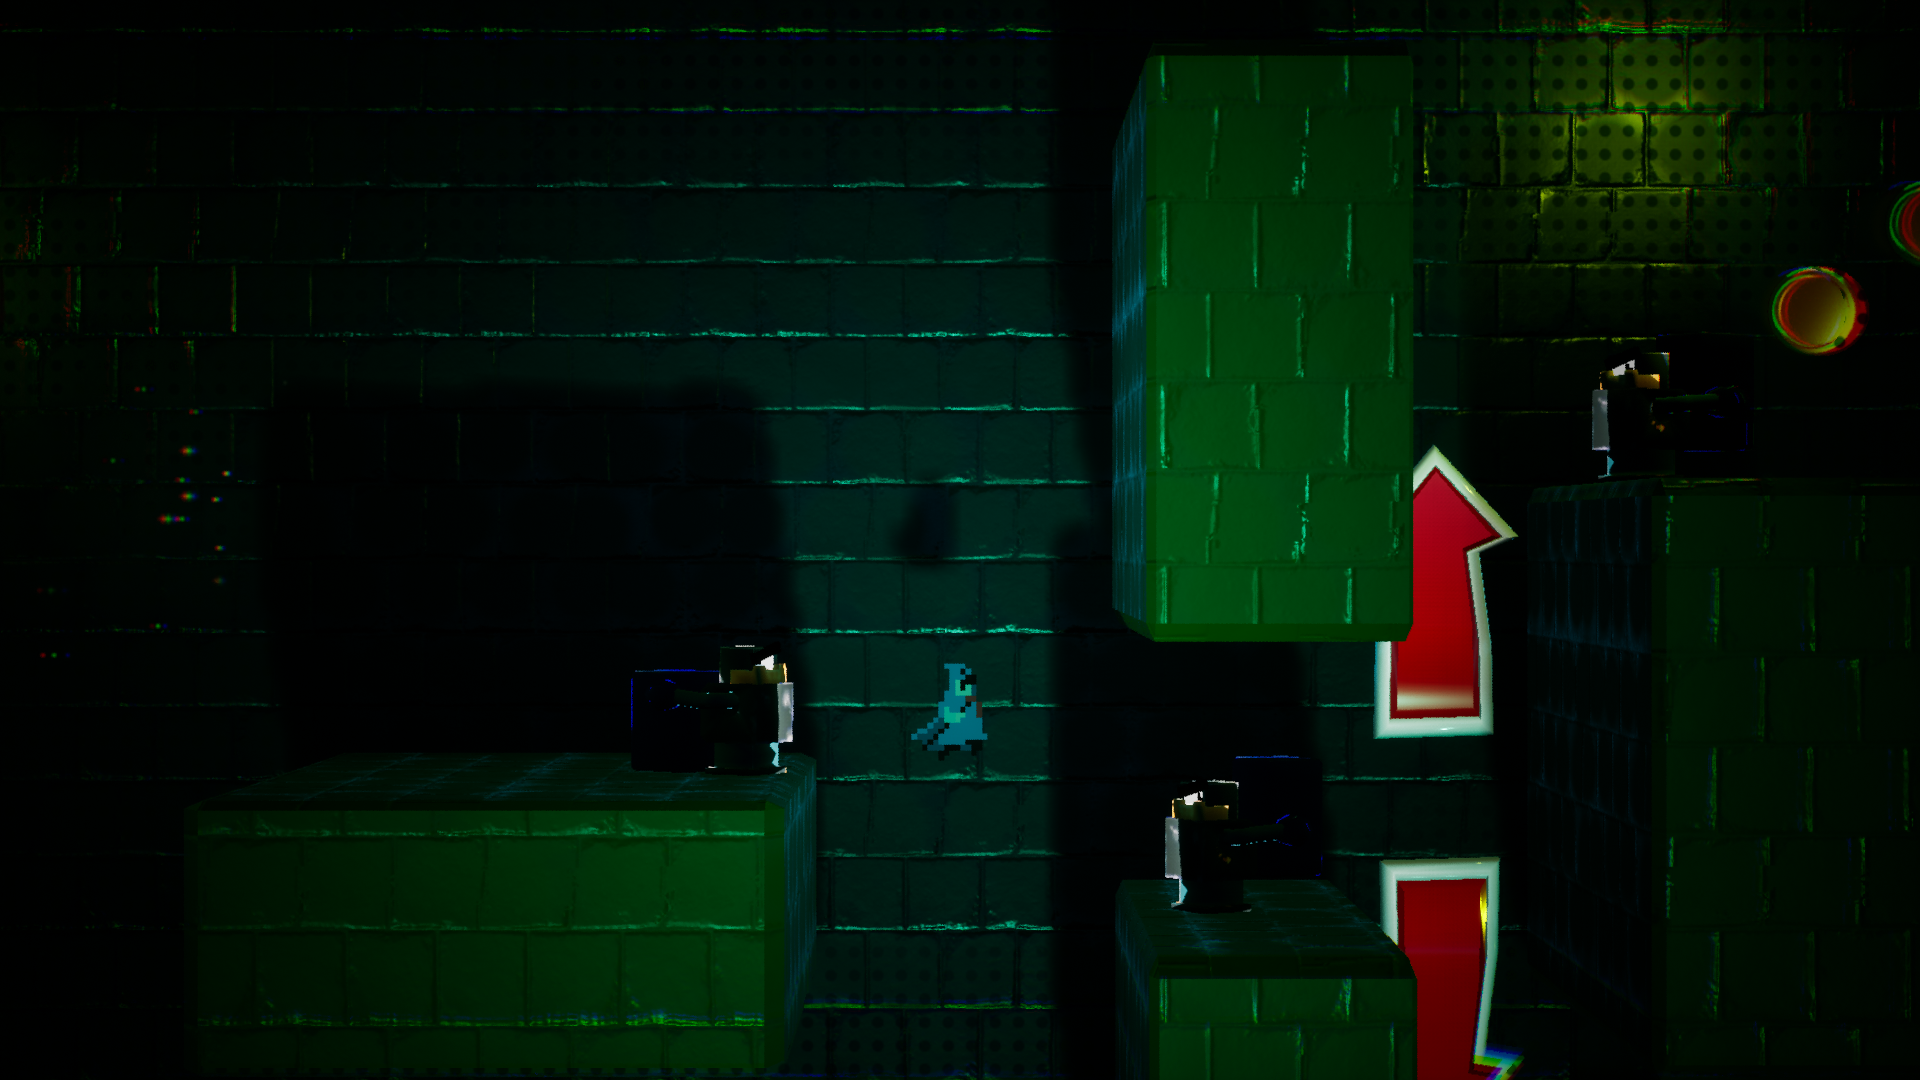 Pole Man in a cavern with green brick walls